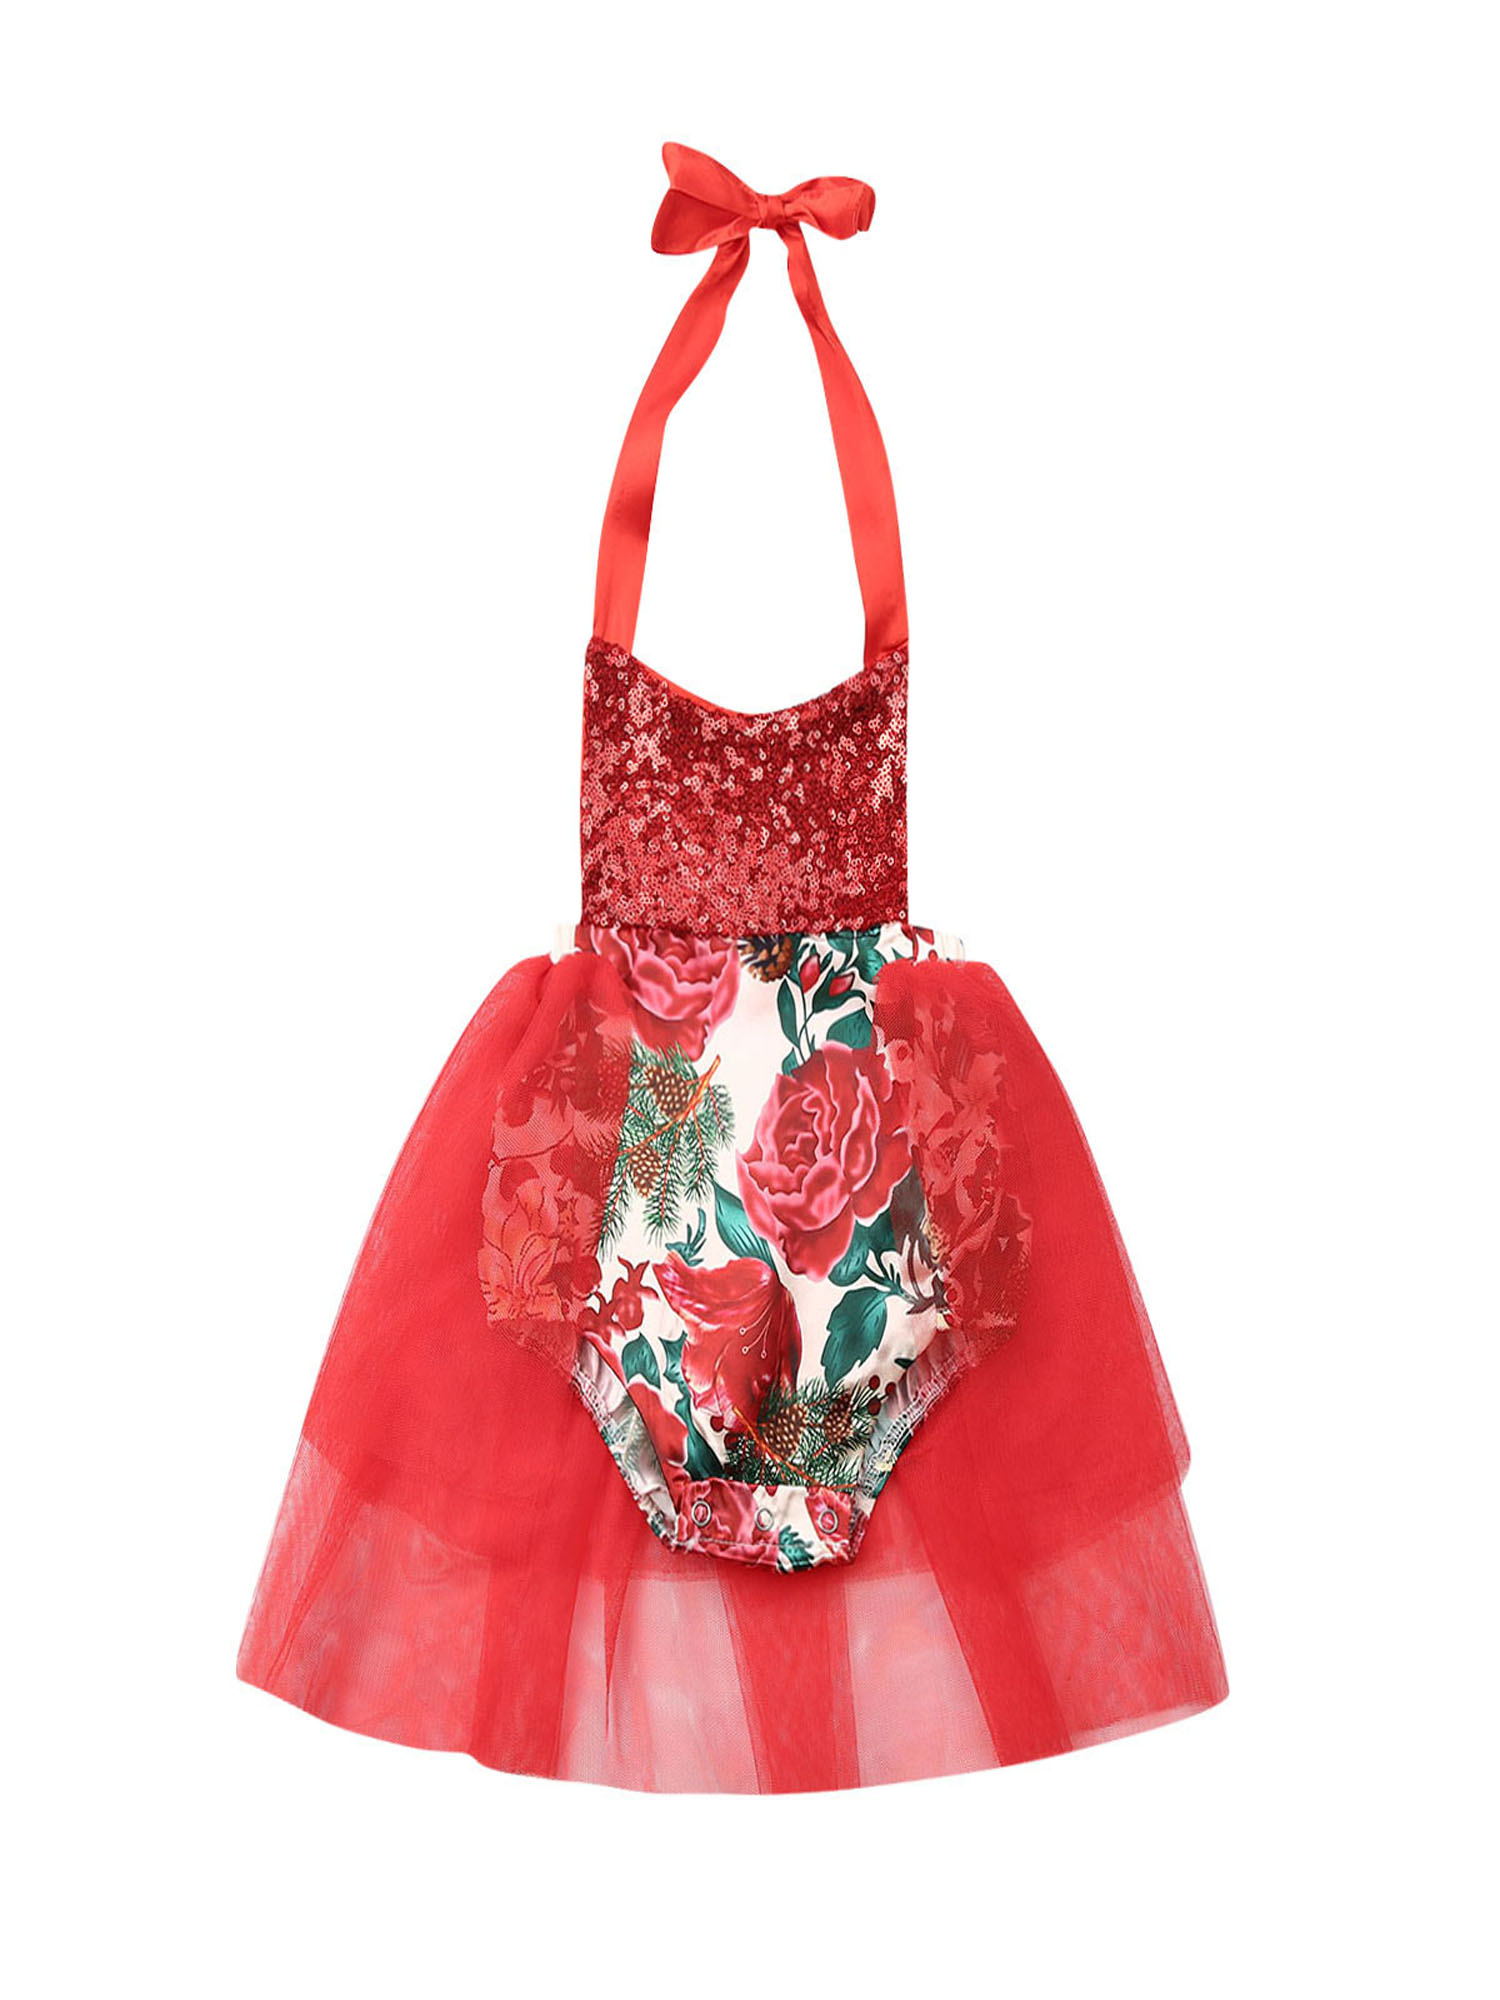 Infant Baby Girls Christmas Outfits First Xmas Party Romper Tutu Dresses Clothes